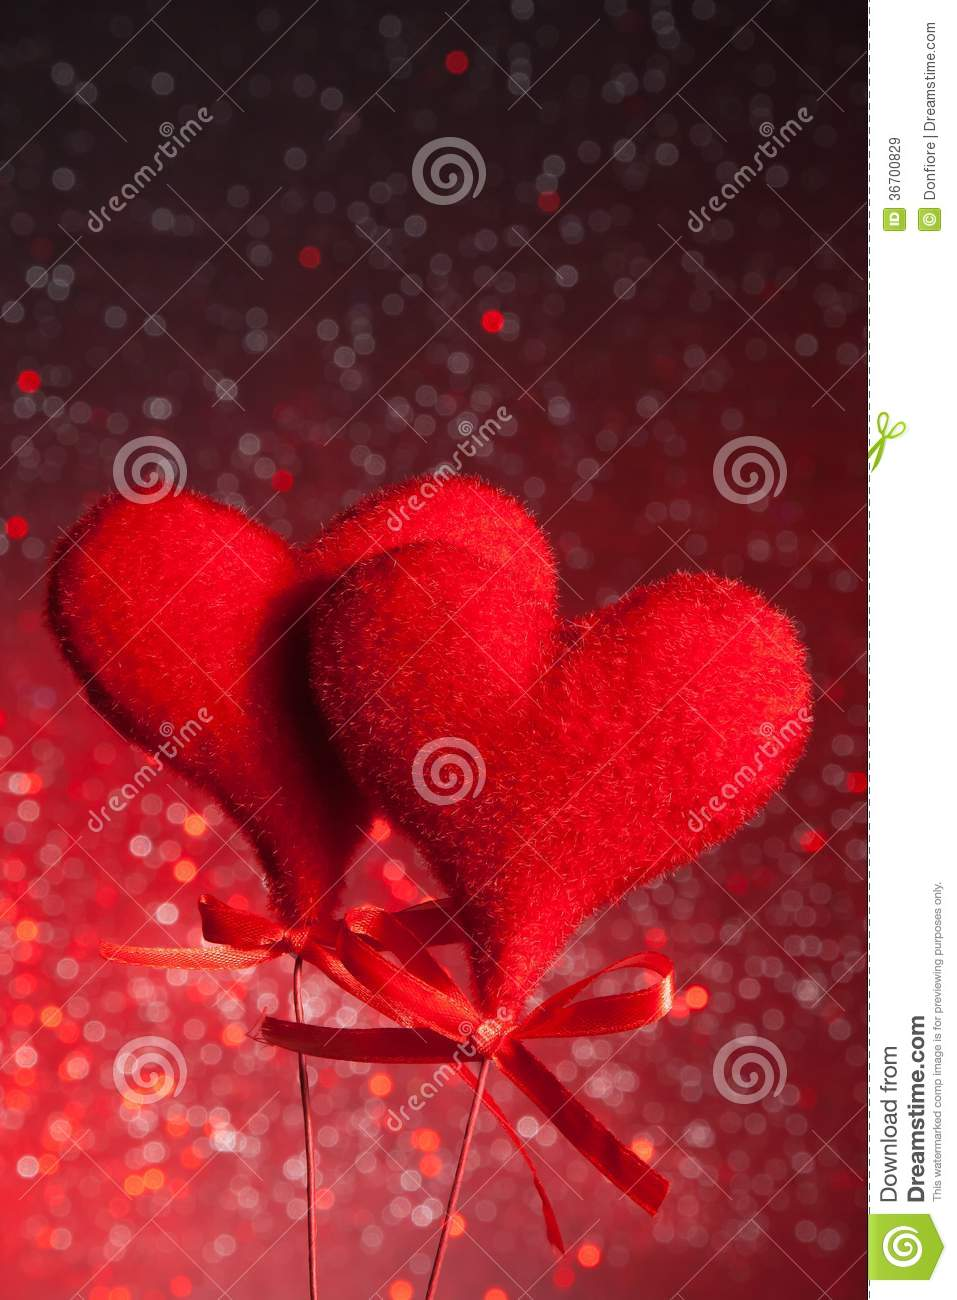 Two red velvet hearts concept of valentine day royalty free stock images i - Velvet concept immobilier ...